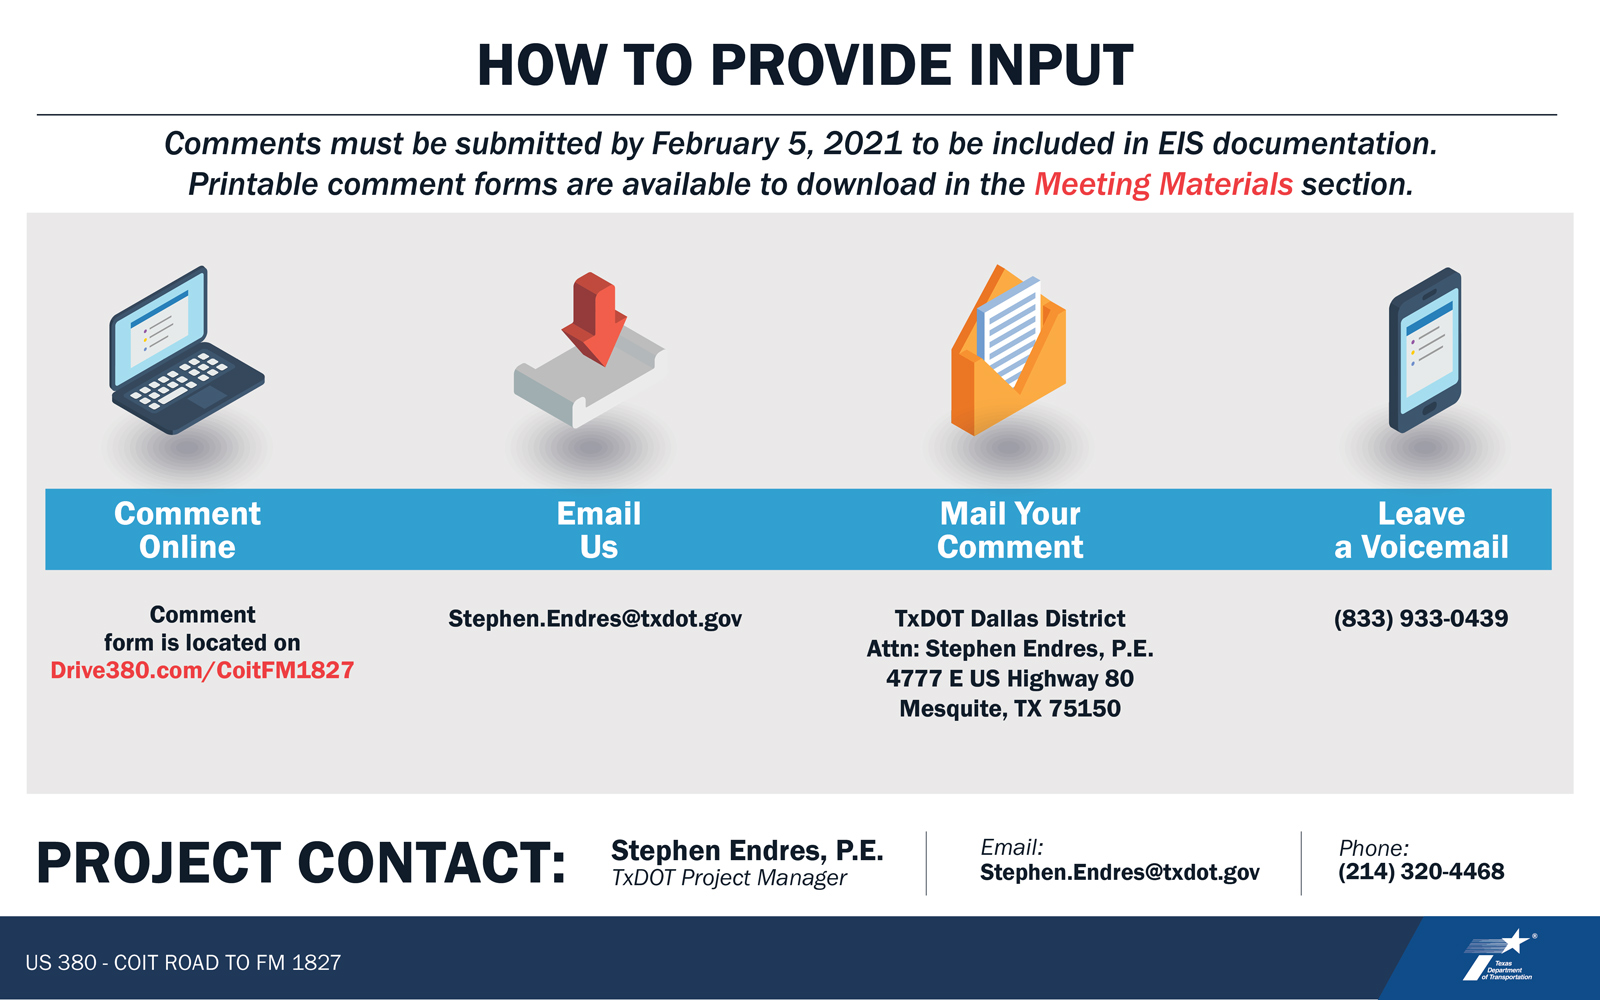 VIRTUAL PUBLIC MEETING BOARD: How to provide Input